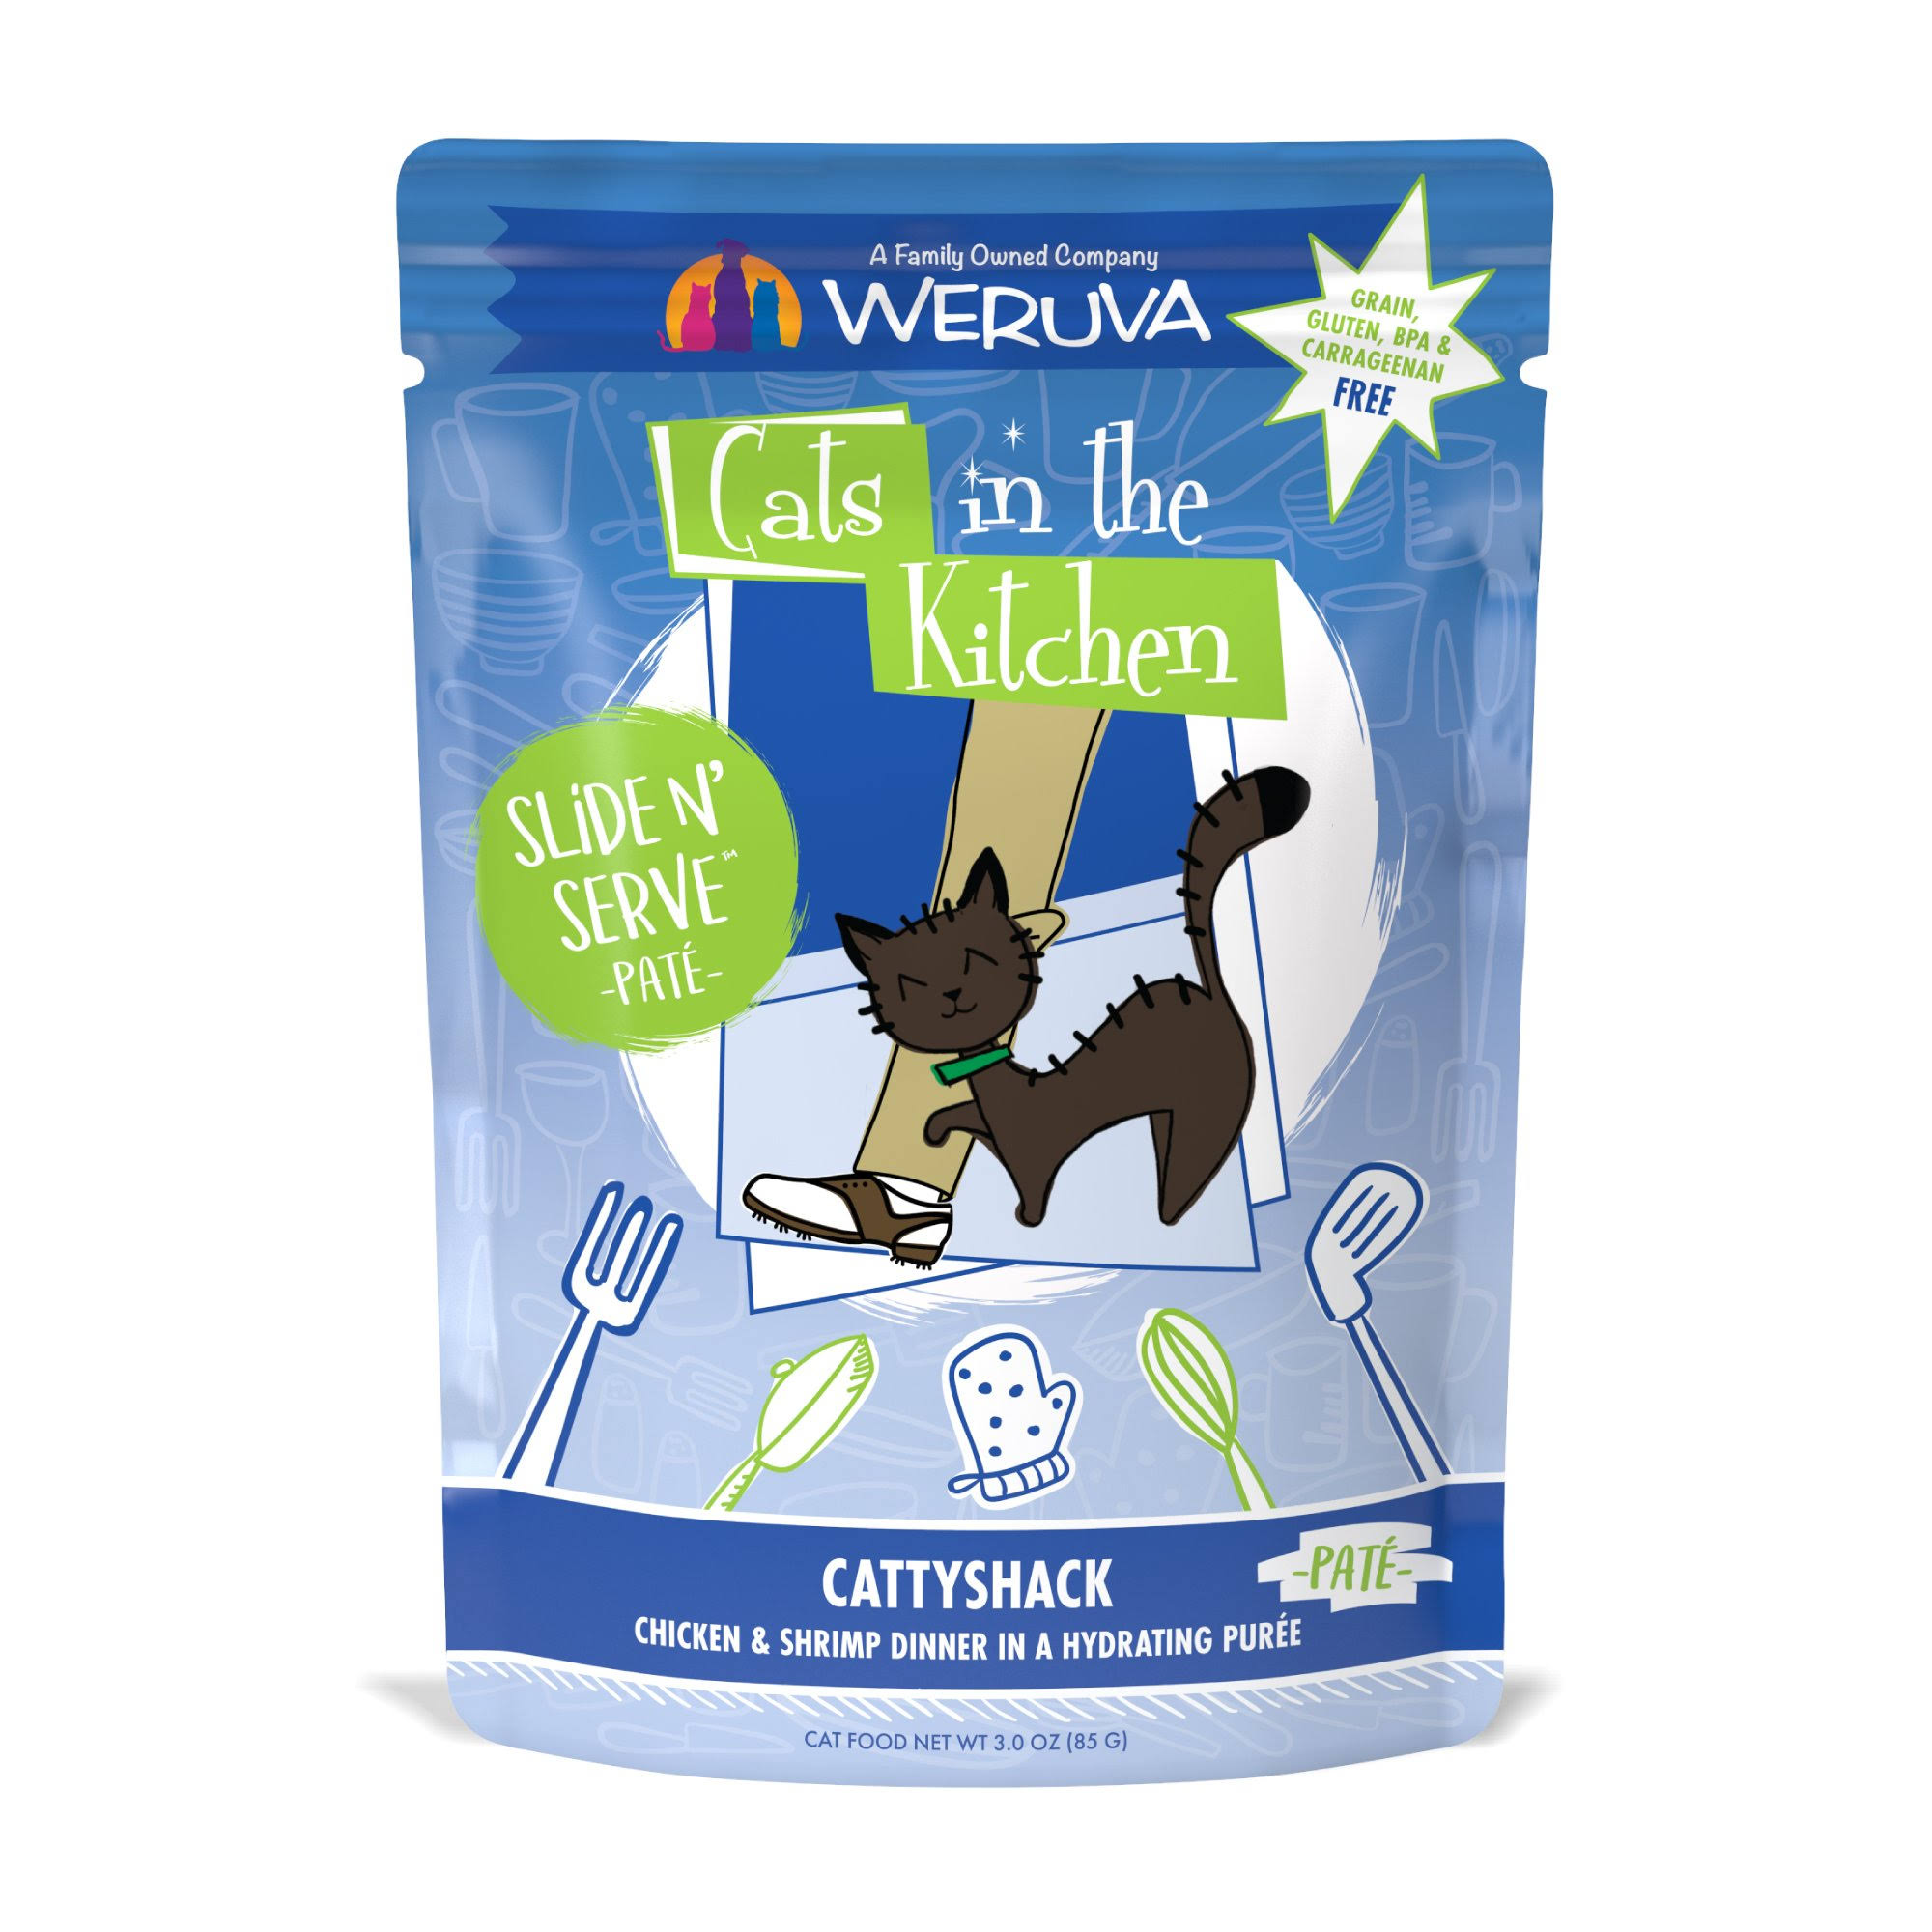 Weruva Cats in The Kitchen Slide N' Serve Pouches 3oz Cattyshack